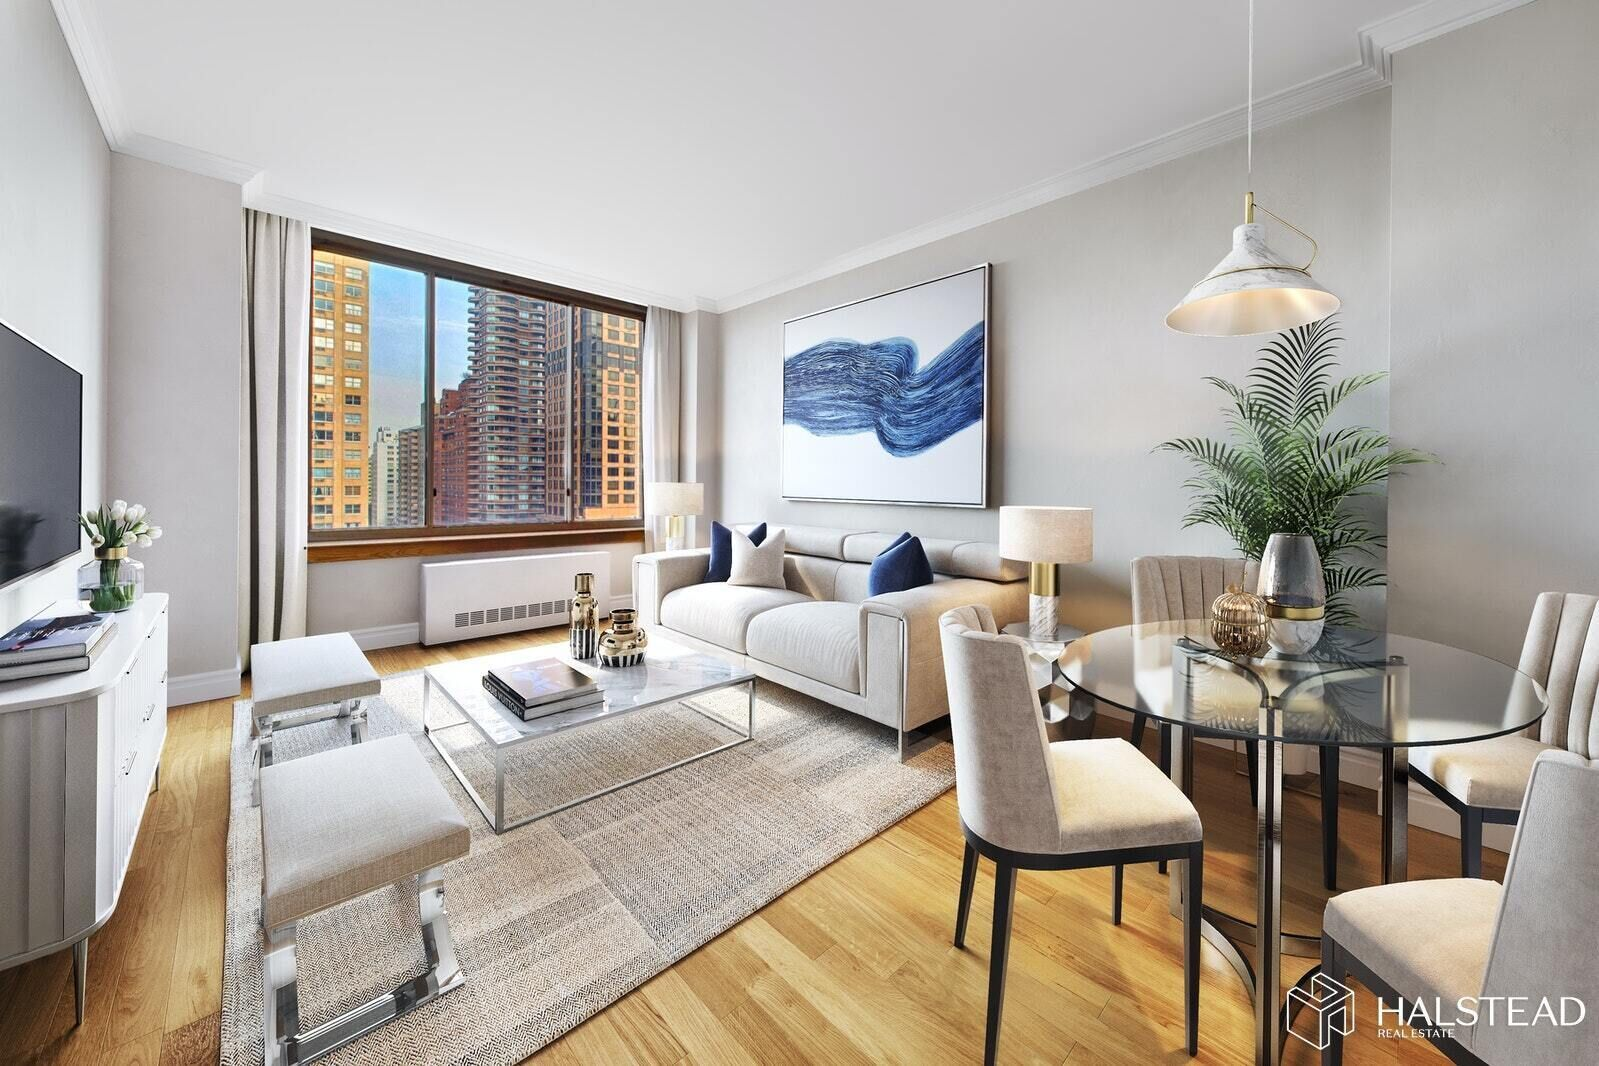 Apartment for sale at 350 East 82nd Street, Apt 10B